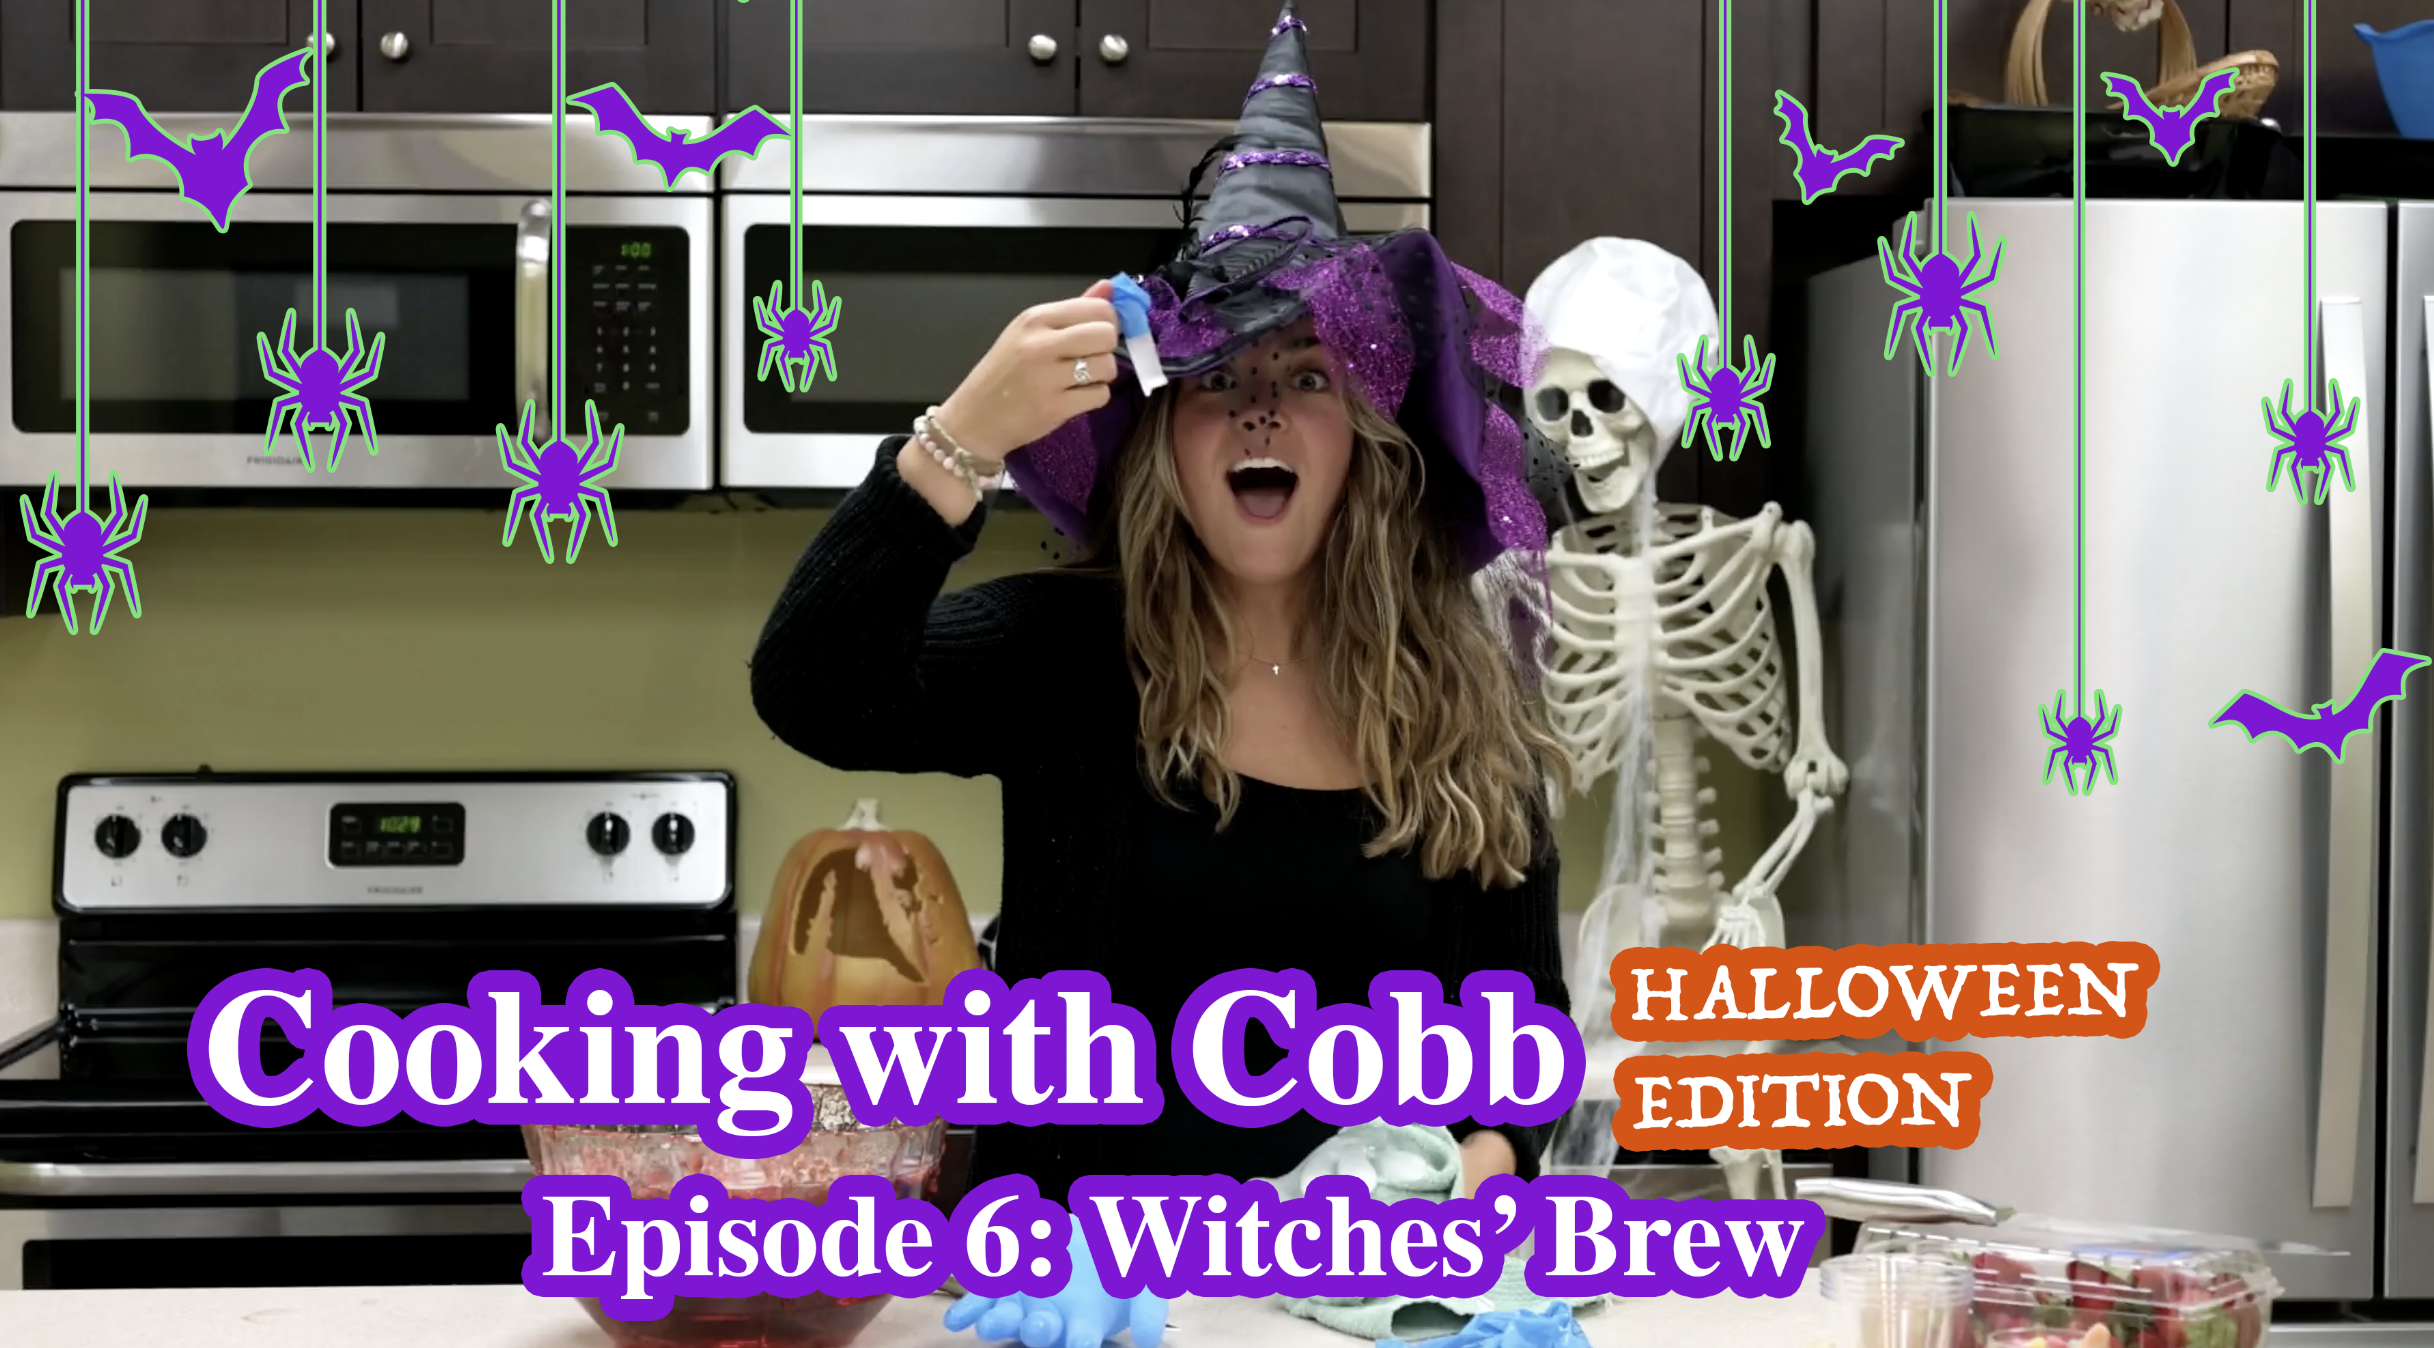 Cooking With Cobb Halloween Edition - Witches' Brew